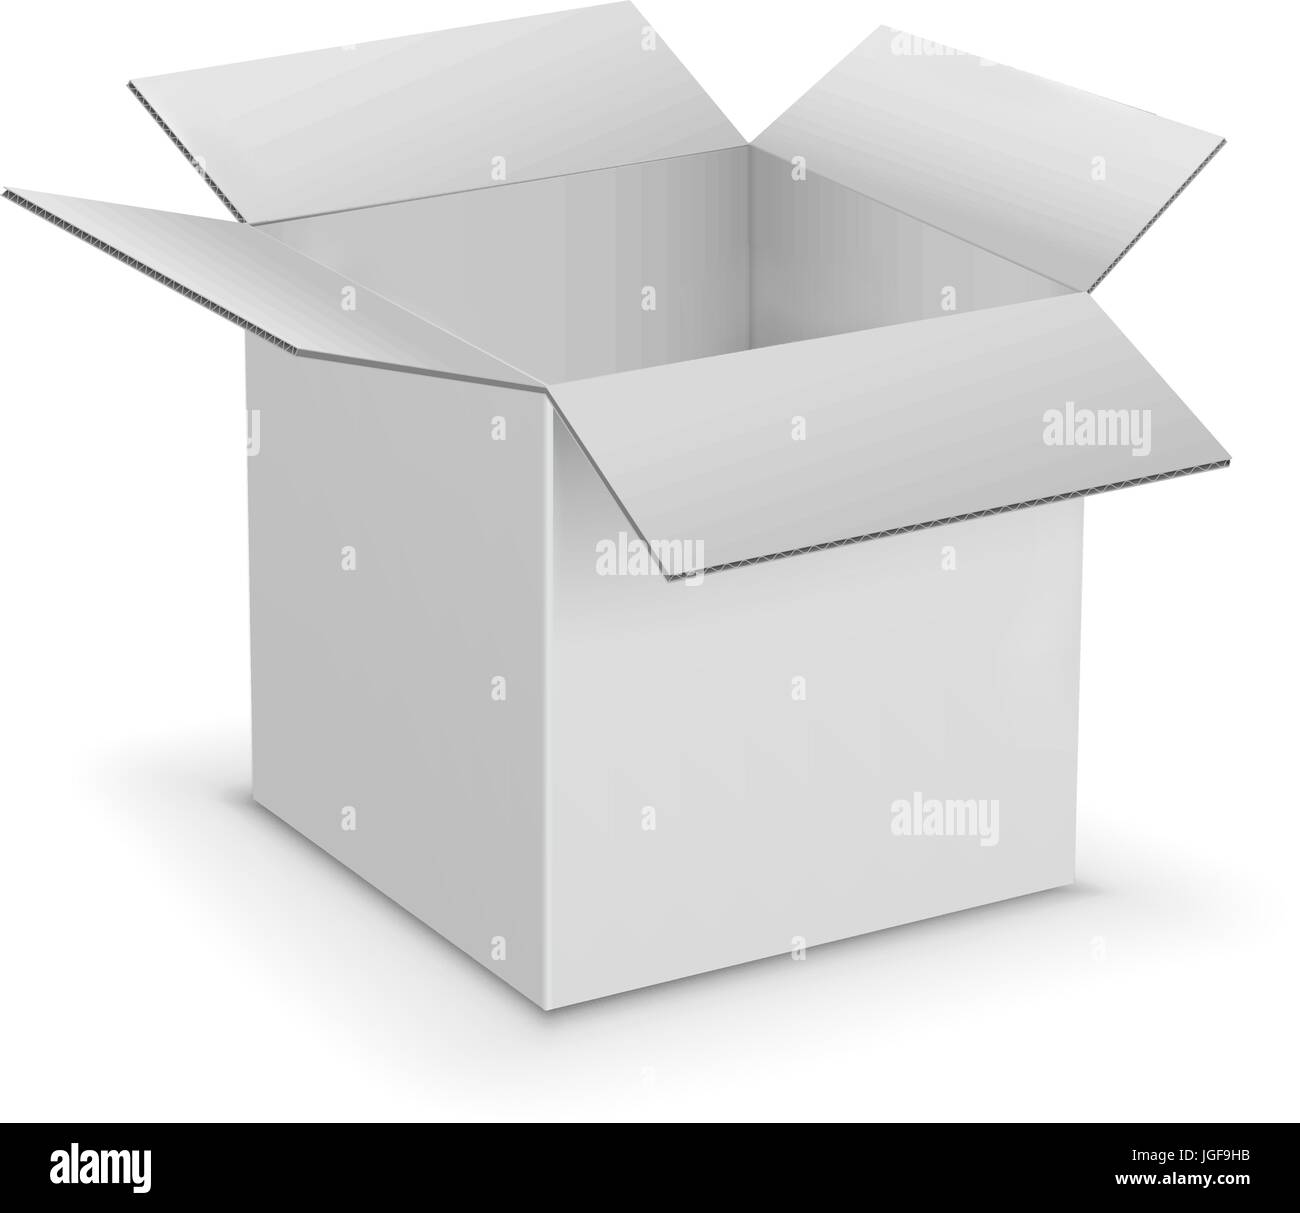 white cardboard boxes template stock vector art illustration